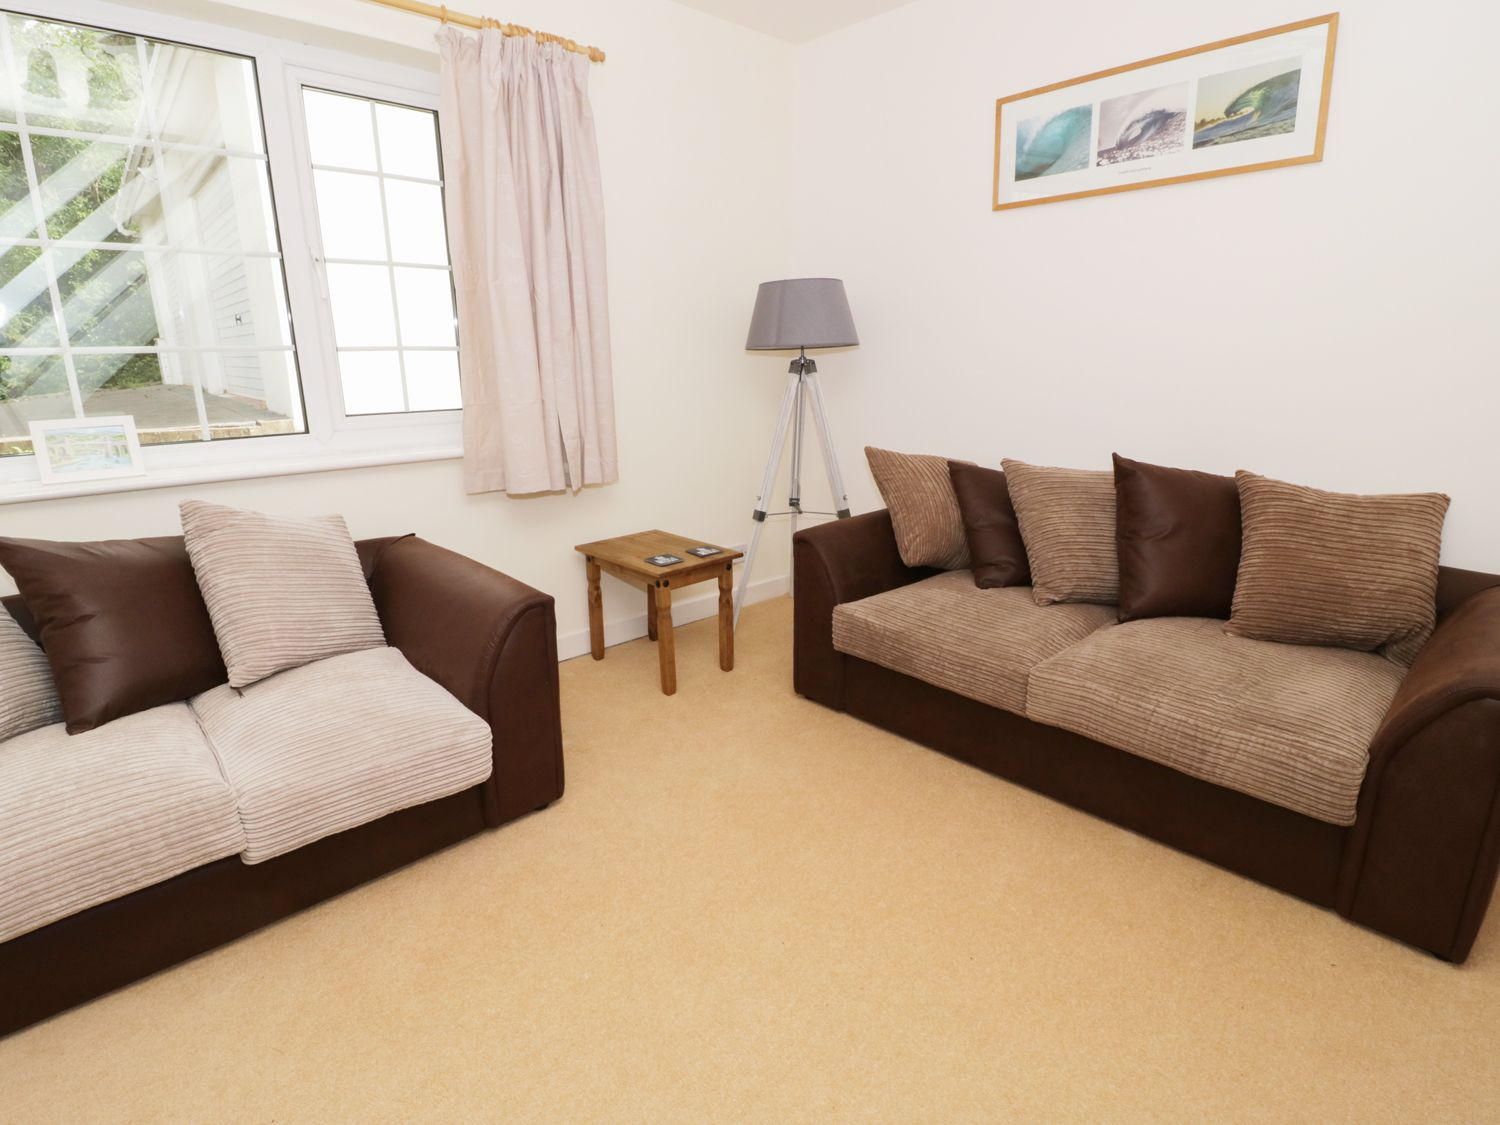 The Cottage at Wylan Hall in Beaumaris - sleeps 3 people